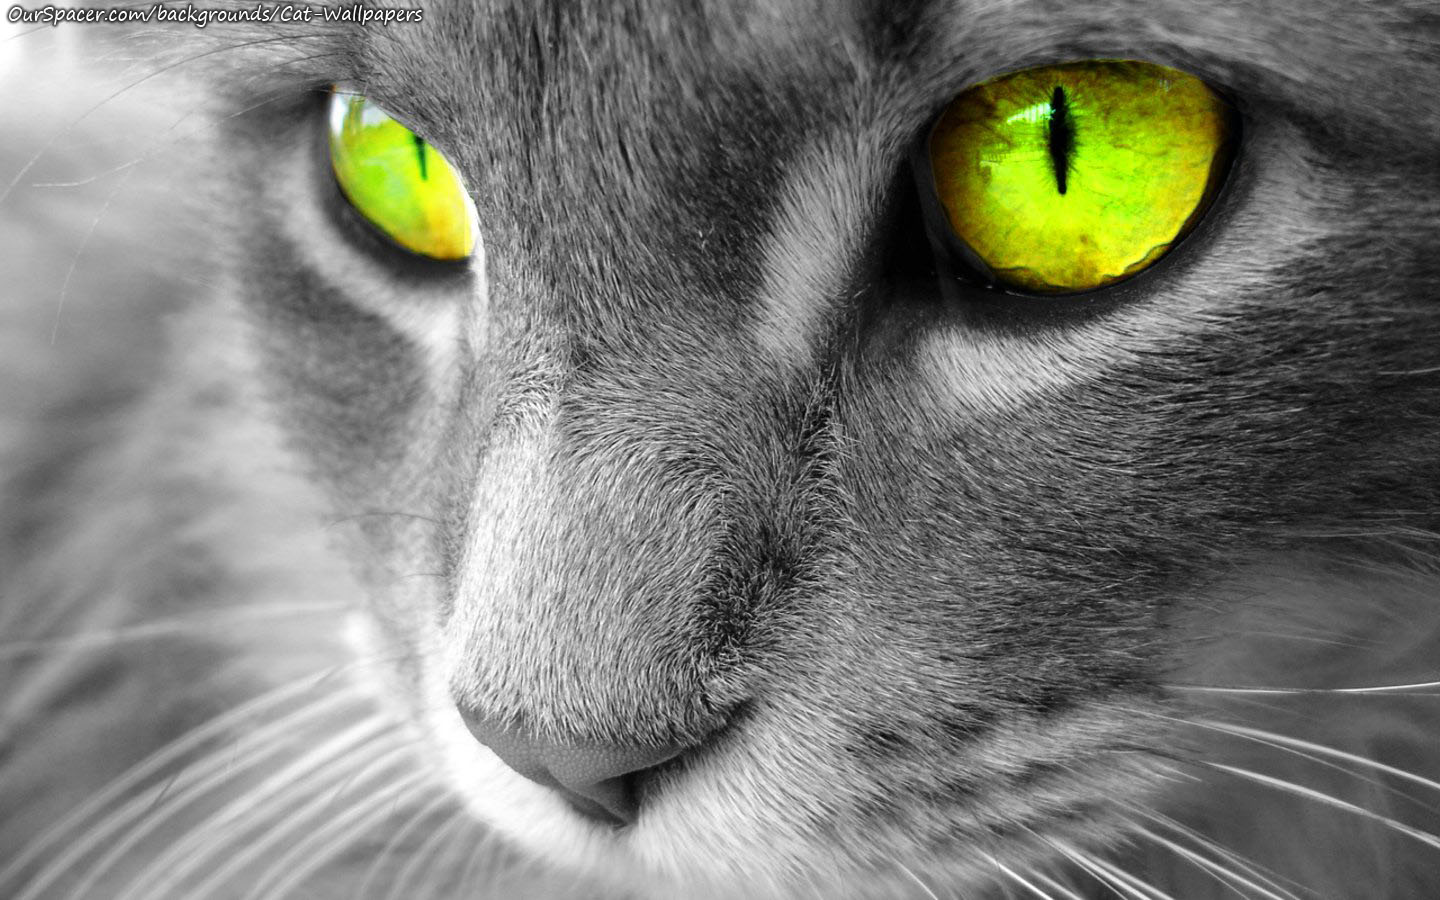 Closeup of a grey cat with yellow eyes wallpapers for myspace, twitter, and hi5 backgrounds